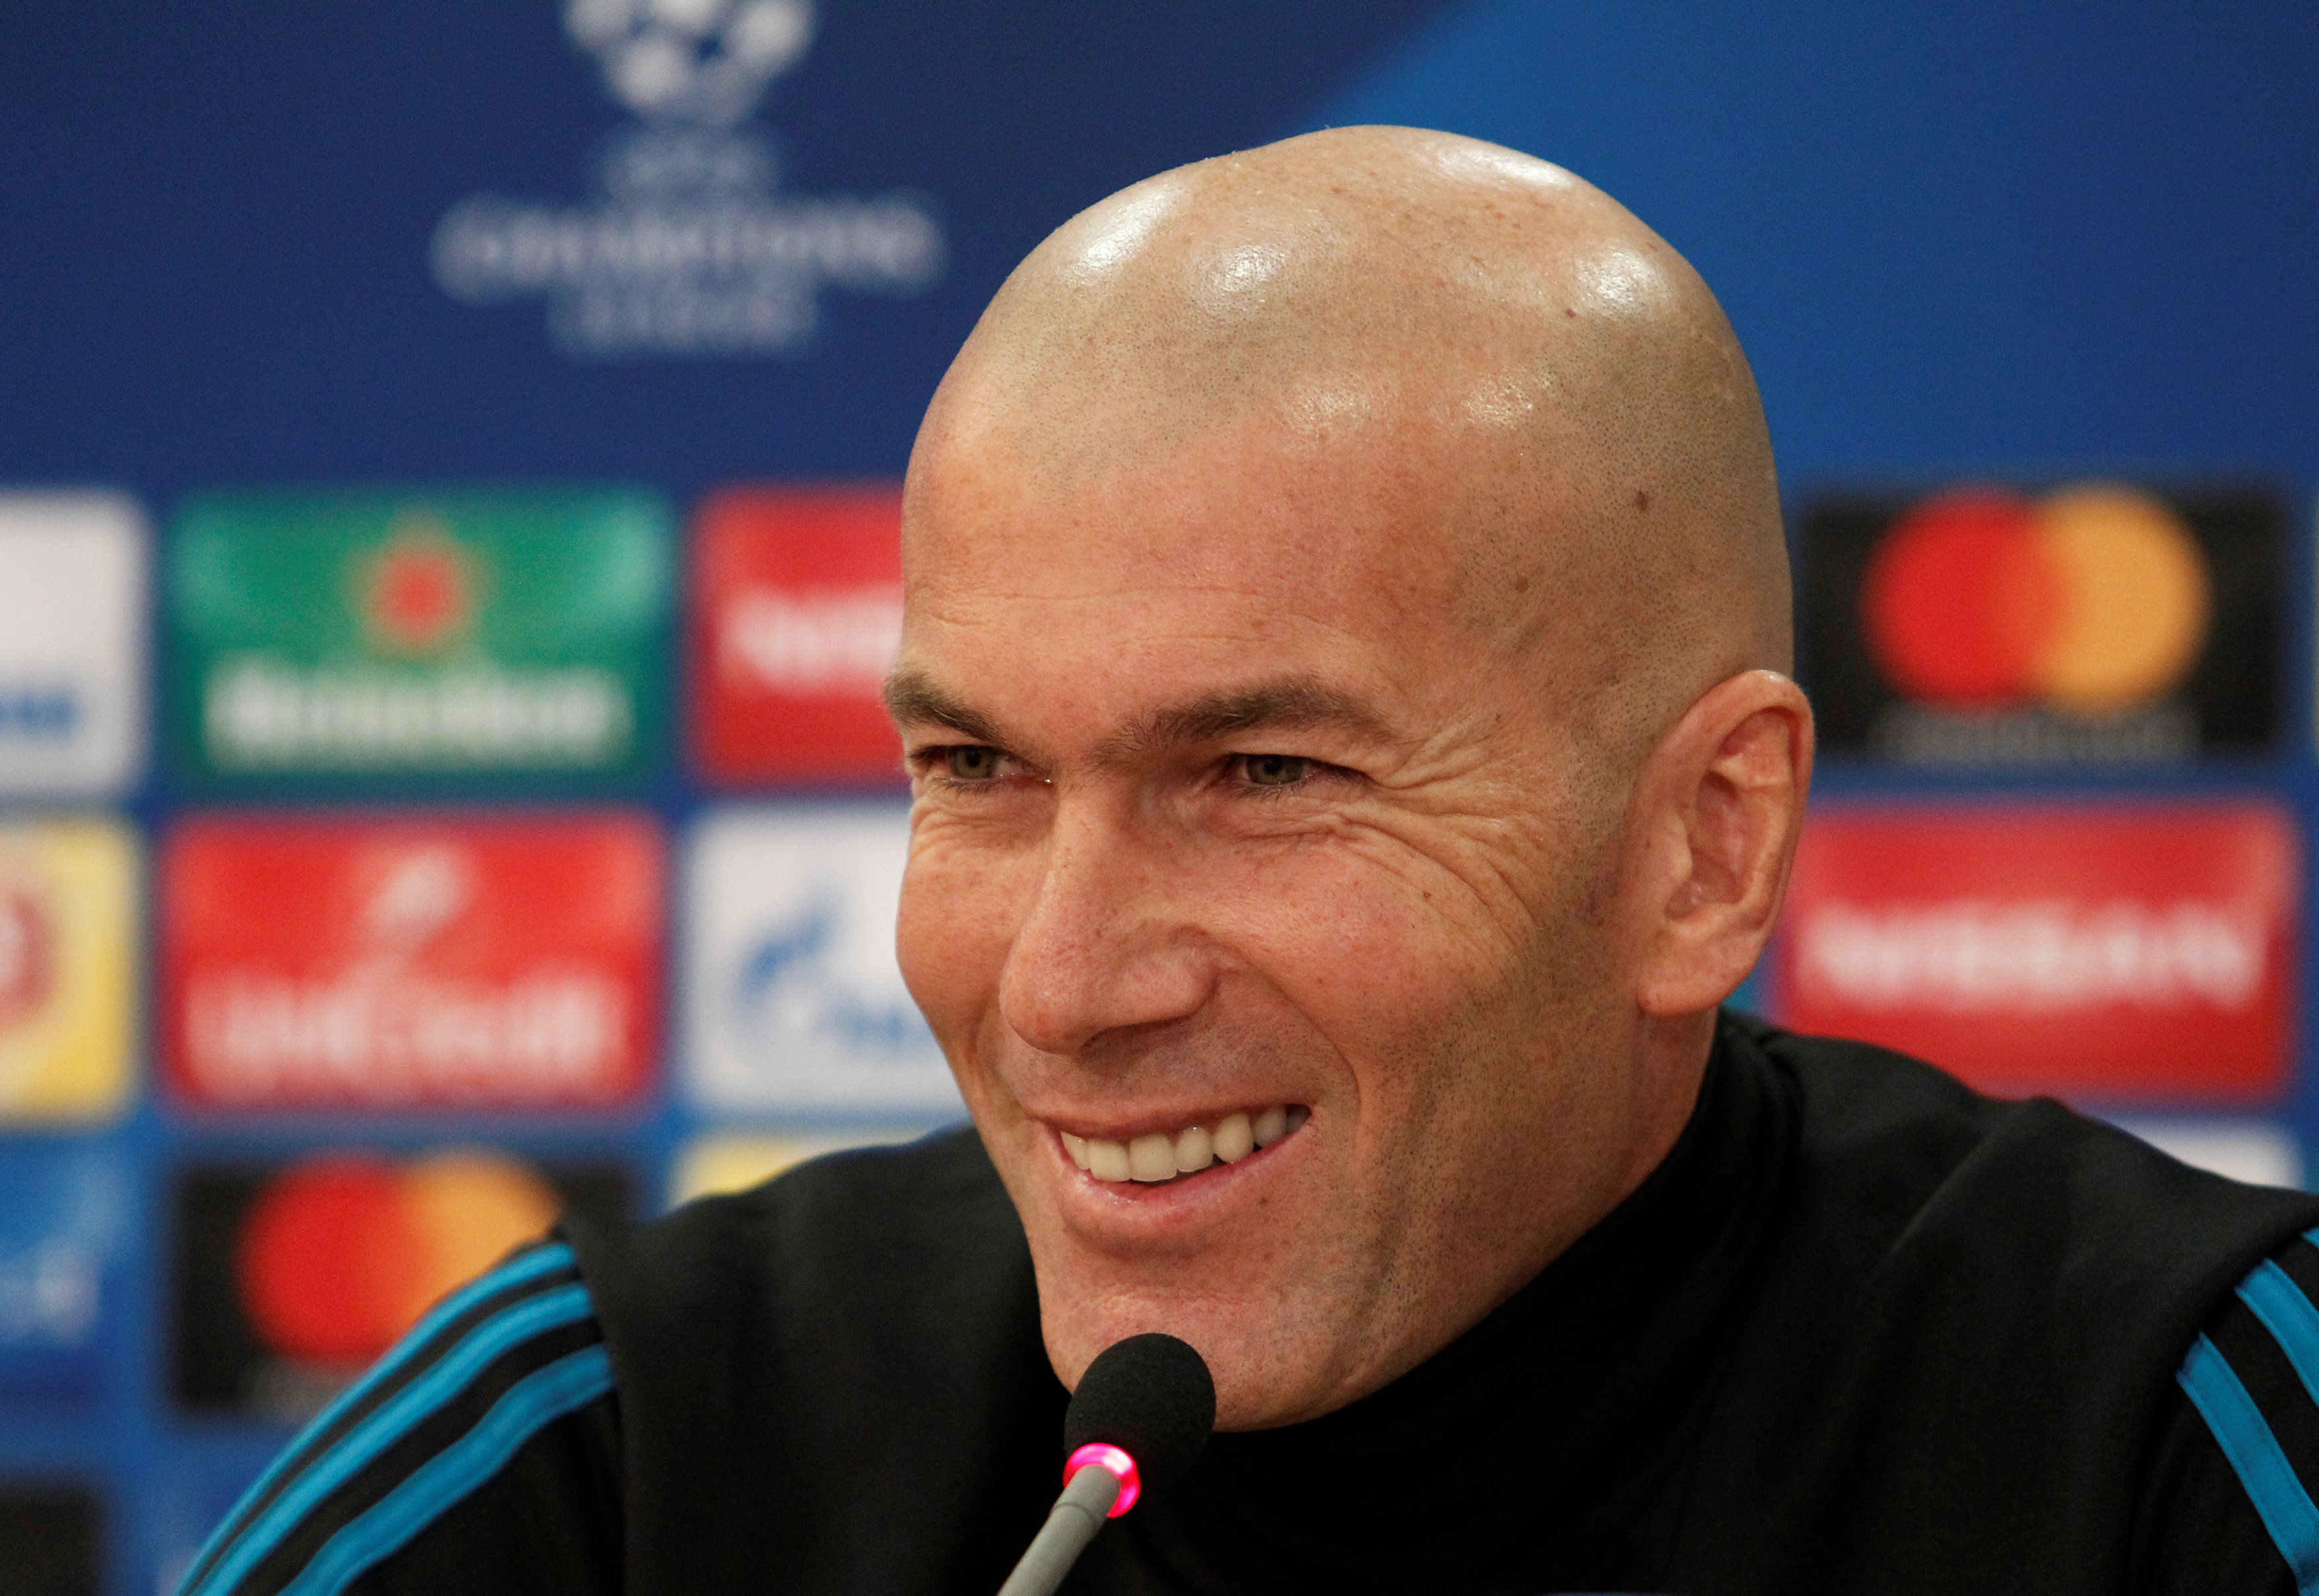 Soccer Football - Champions League - Real Madrid Press Conference - GSP Stadium, Nicosia, Cyprus - November 20, 2017   Real Madrid coach Zinedine Zidane during the press conference   REUTERS/Yiannis Kourtoglou